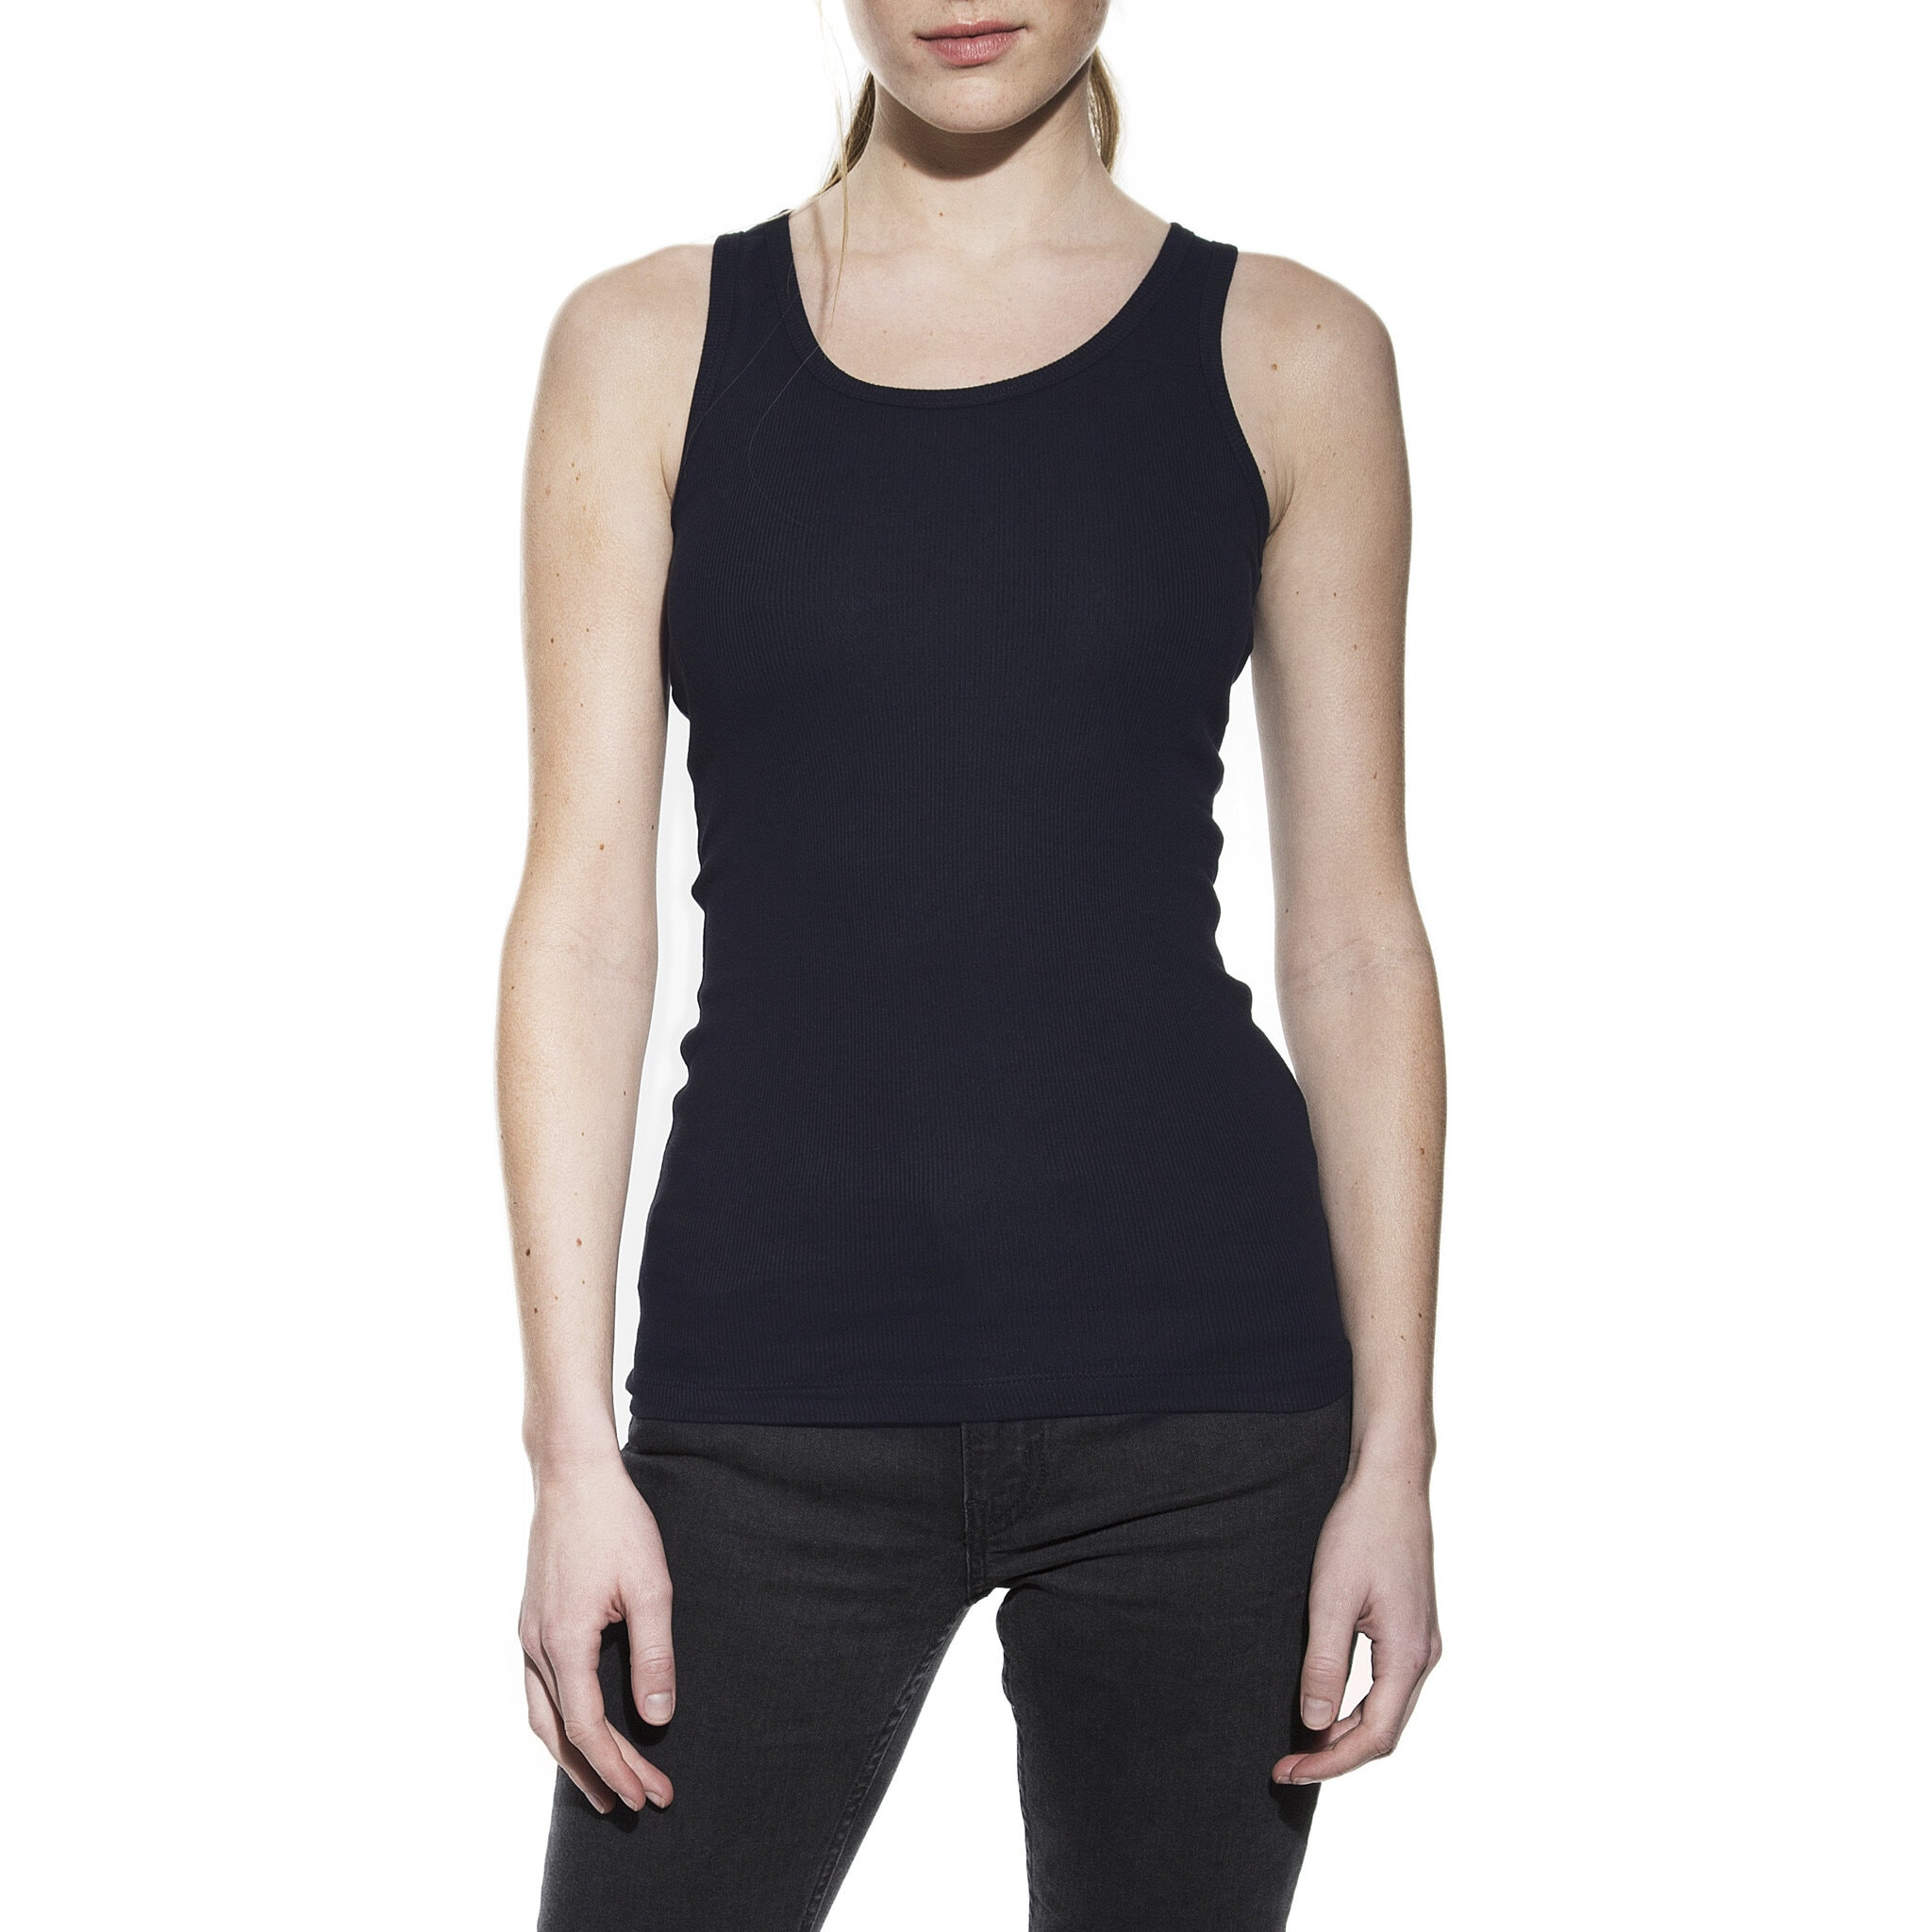 605104_Woman_Tank_ribbed_dark-navy_1